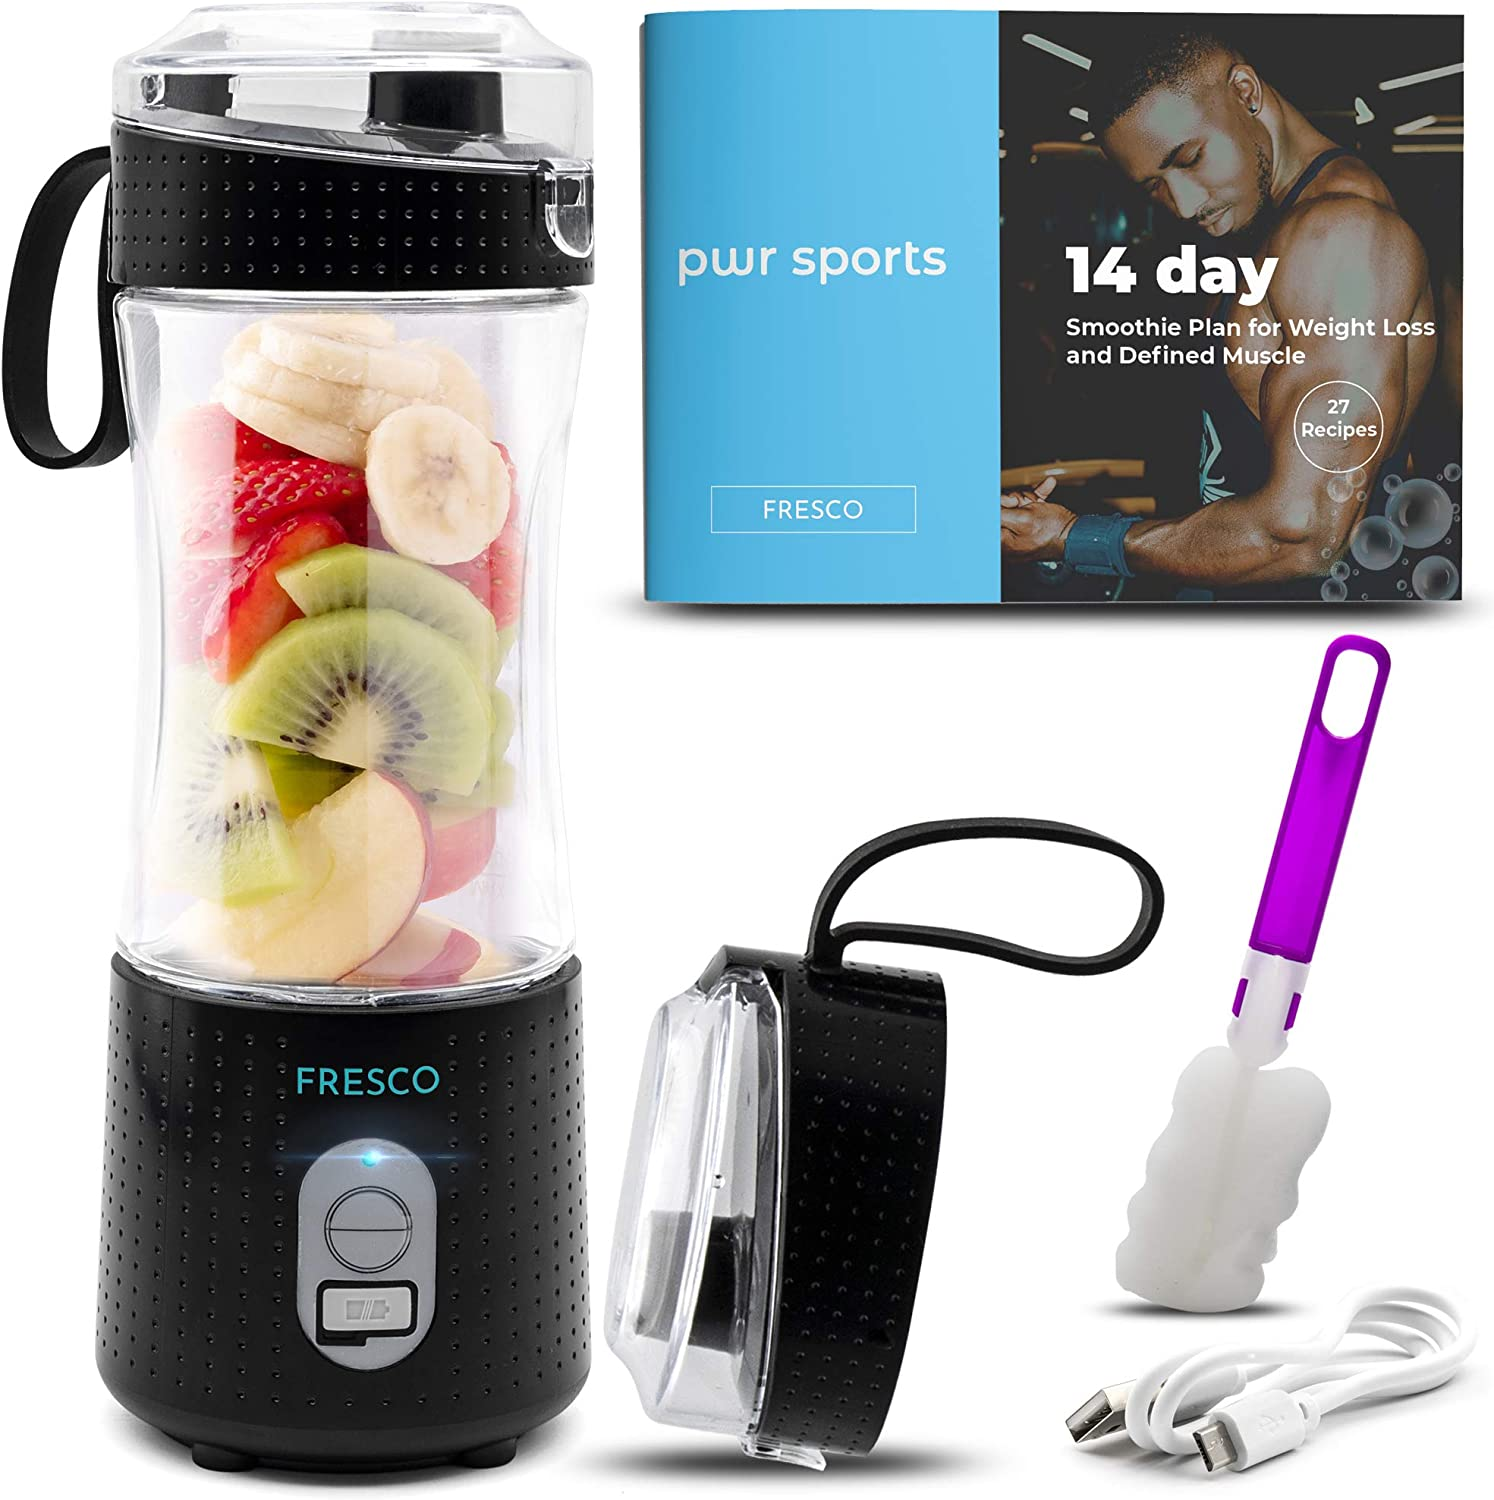 Portable Blender, Personal Size Blender for Shakes and Smoothies, Fruit Smoothie Blender, Milkshake – Juicer Mini Blender 4000 mAh USB Rechargeable with 6 Blades, Handheld use in Sports, Travel, Gym